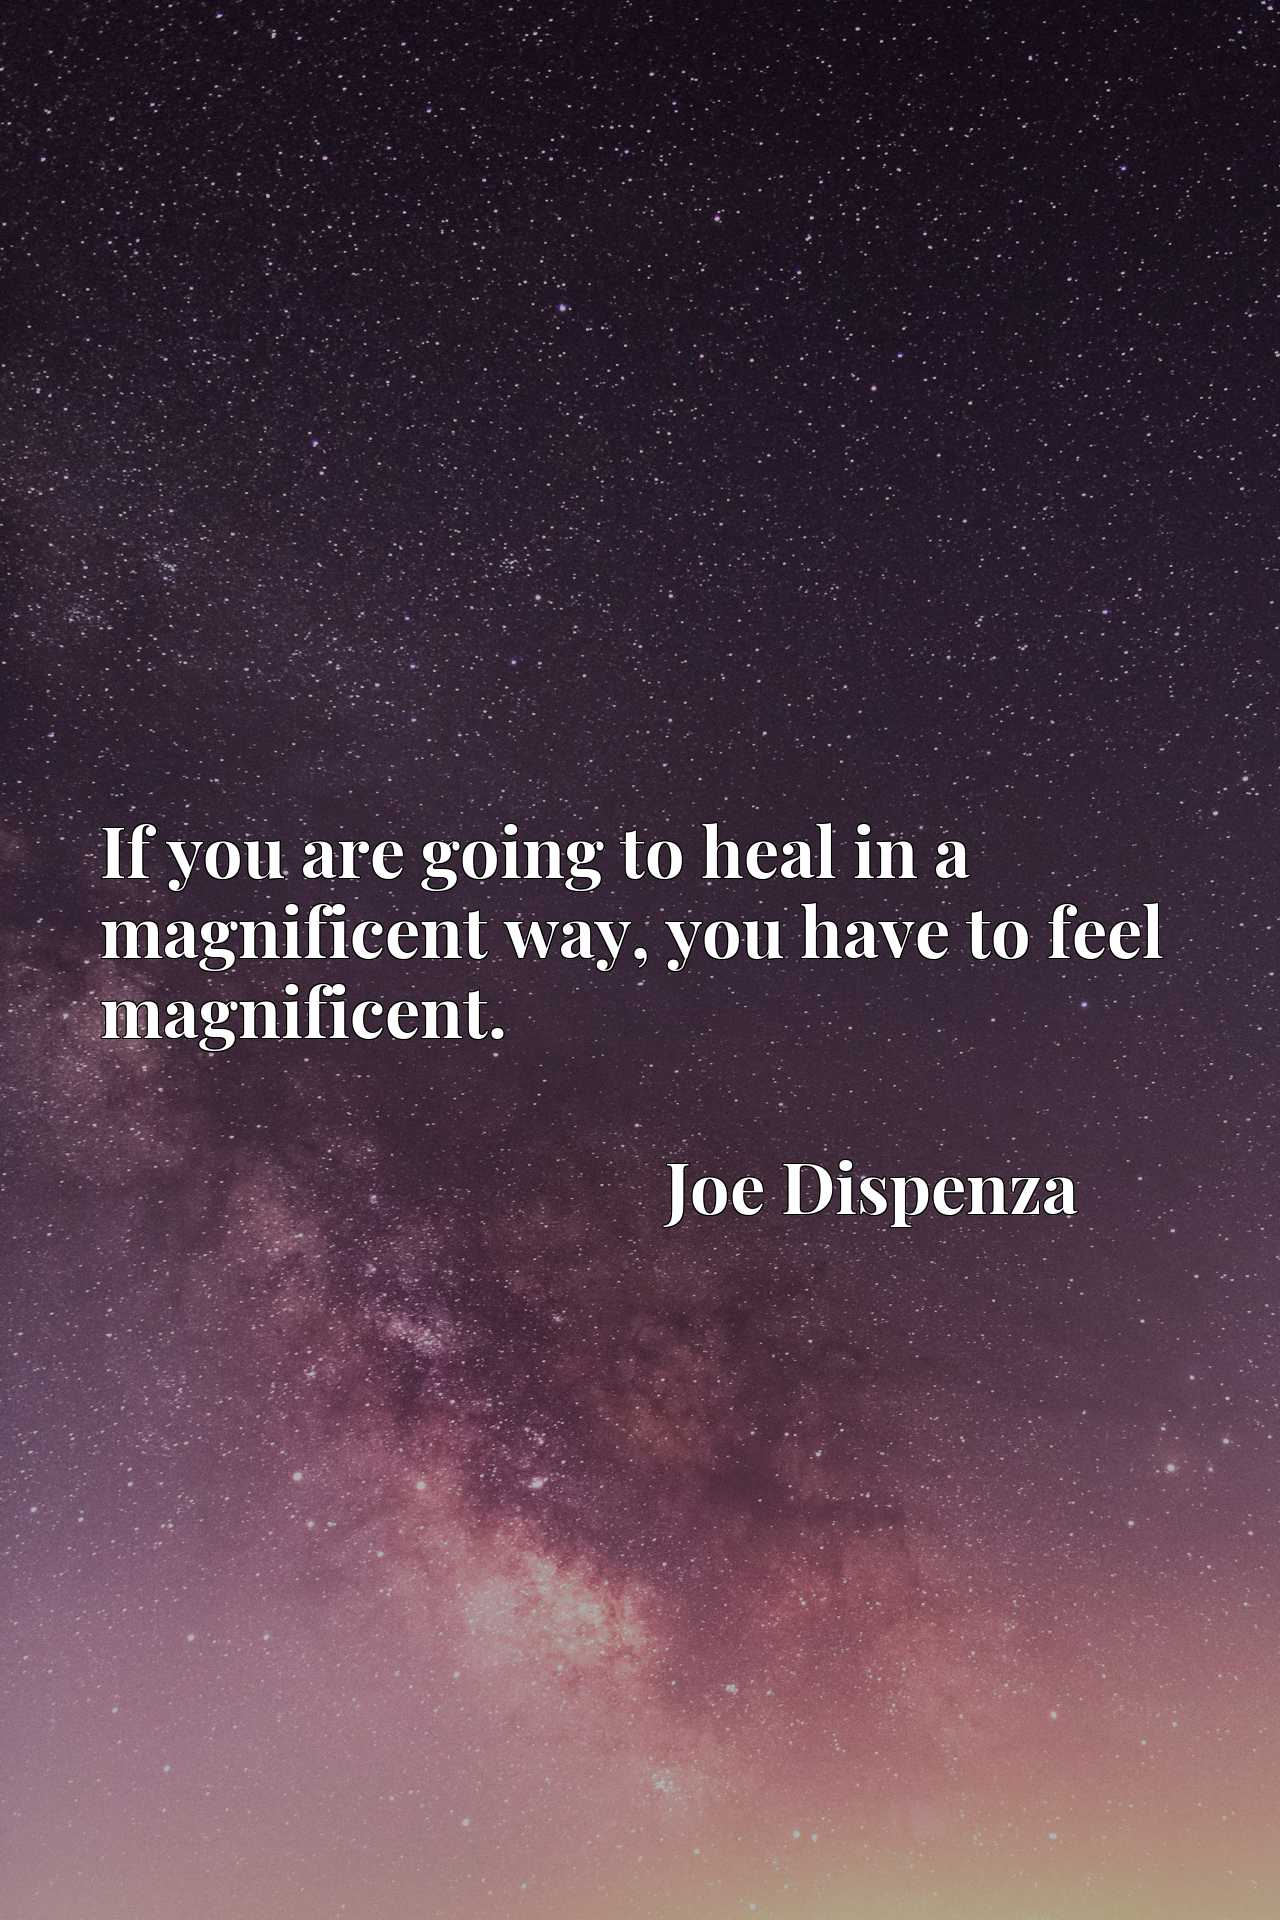 If you are going to heal in a magnificent way, you have to feel magnificent.